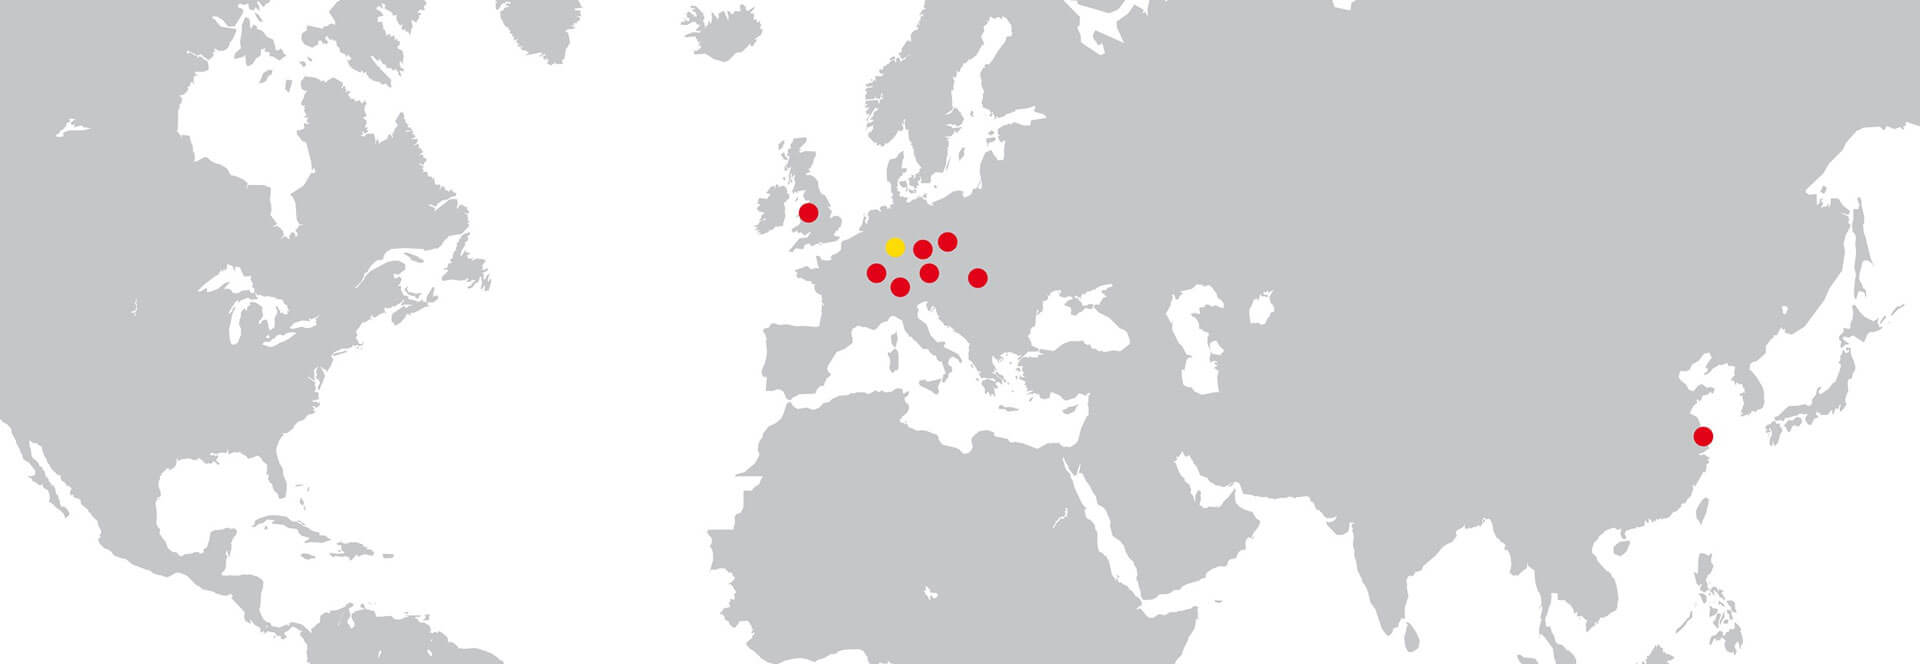 MEA Group - Locations worldwide